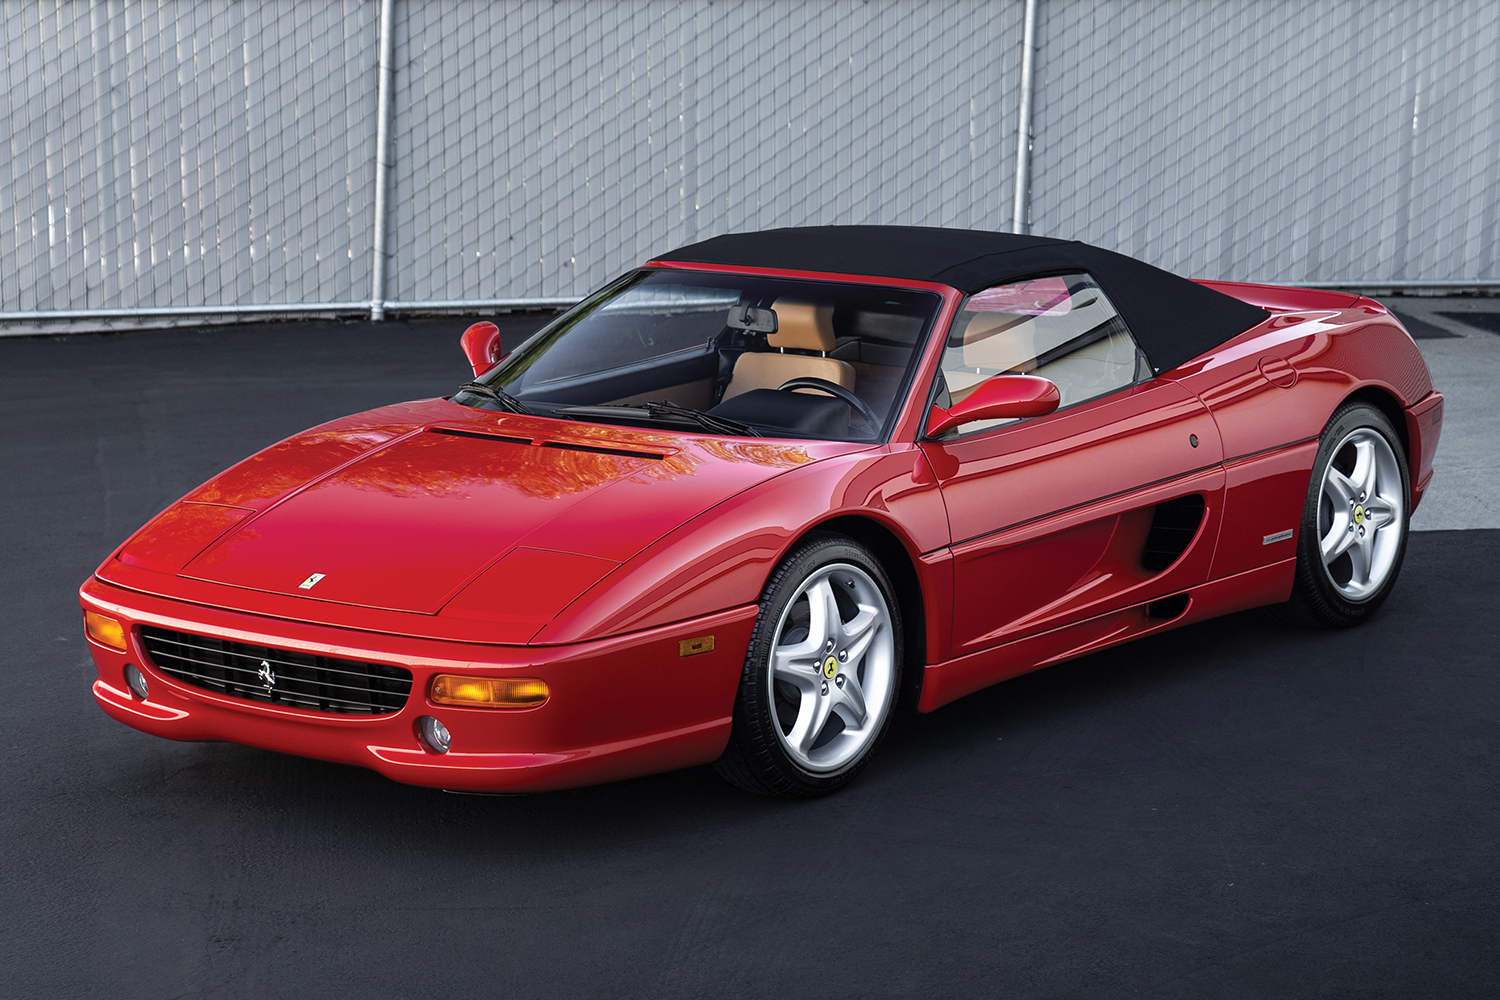 1997 Ferrari F355 Spider Ming Collection Auction